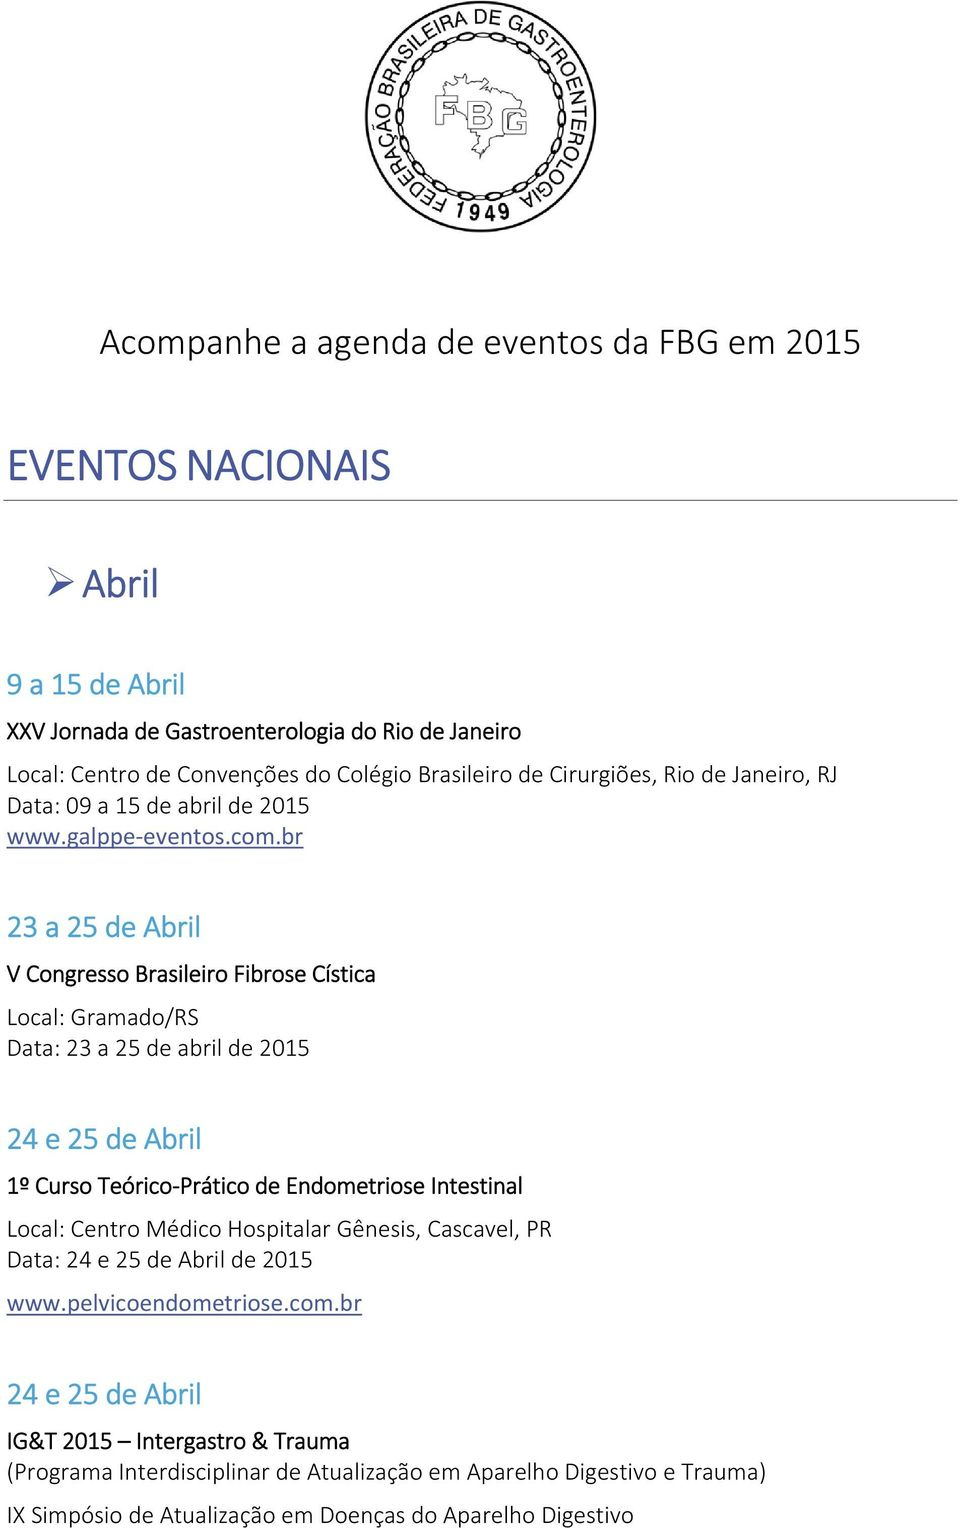 br 23 a 25 de Abril V Congresso Brasileiro Fibrose Cística Local: Gramado/RS Data: 23 a 25 de abril de 2015 24 e 25 de Abril 1º Curso Teórico Prático de Endometriose Intestinal Local: